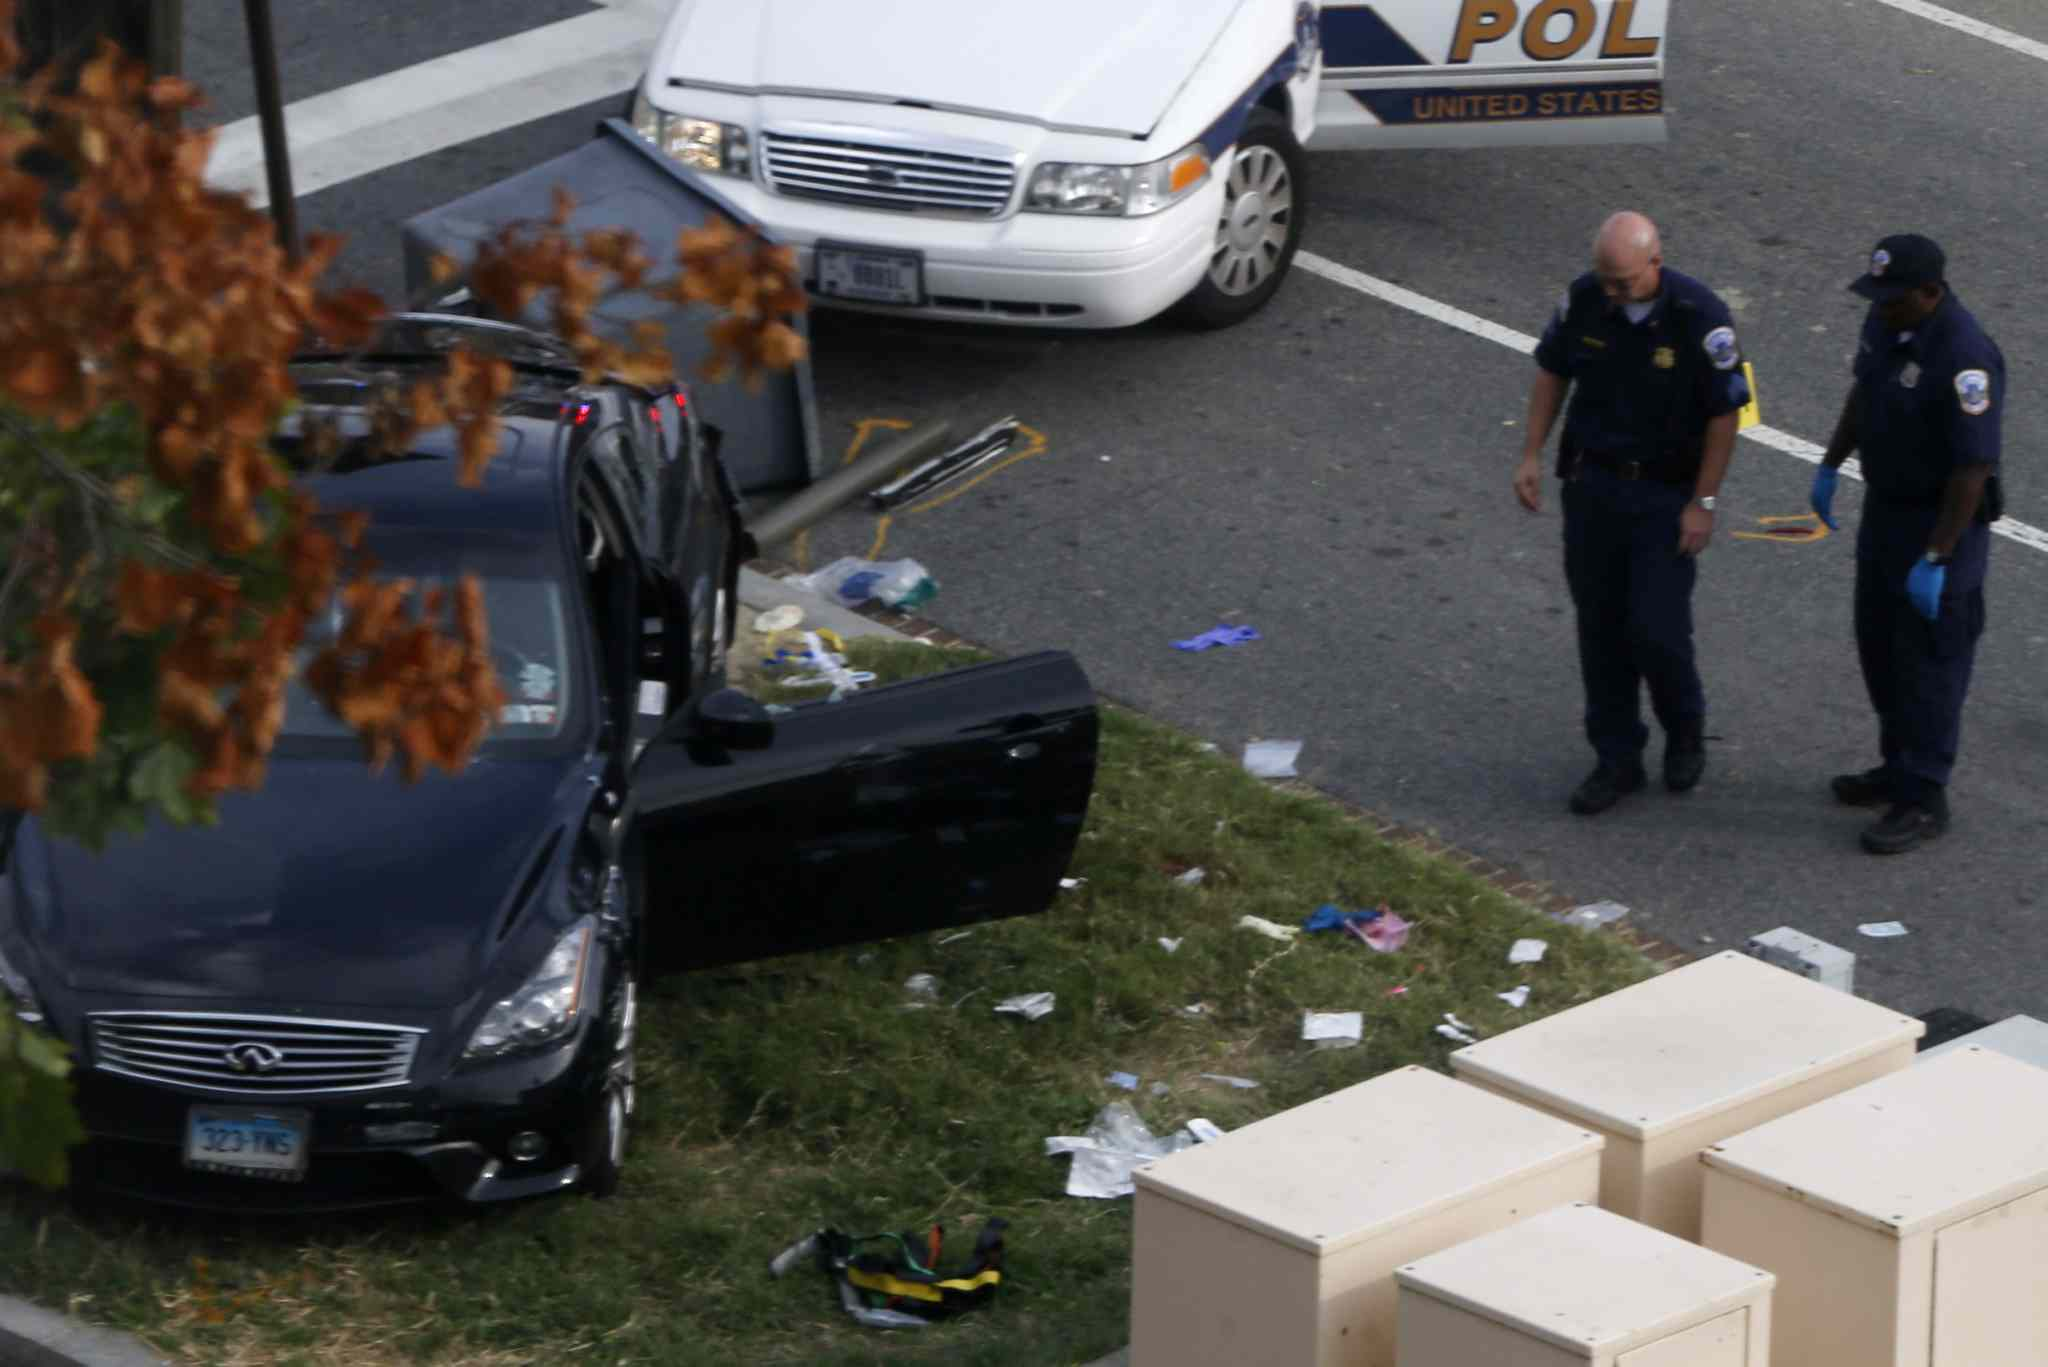 Capitol Hill police officers inspect a vehicle after the collision and shooting.